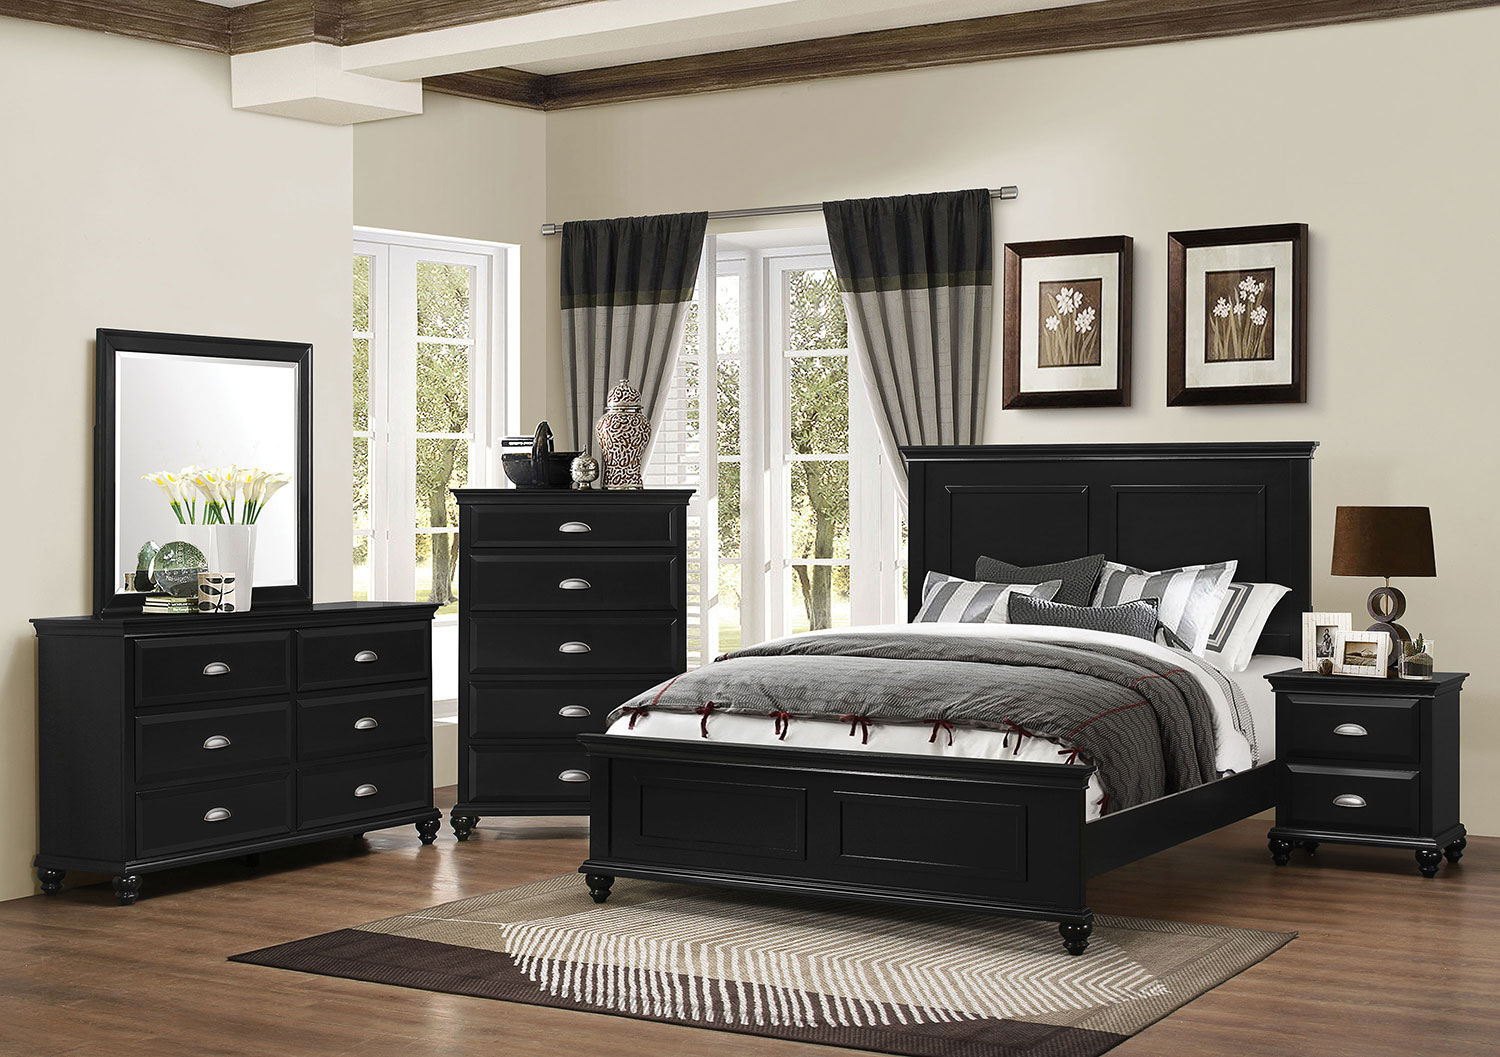 Bedroom Furniture - Meadow Grove 4-Piece King Bedroom Set with Dresser, Mirror and Chest - Black